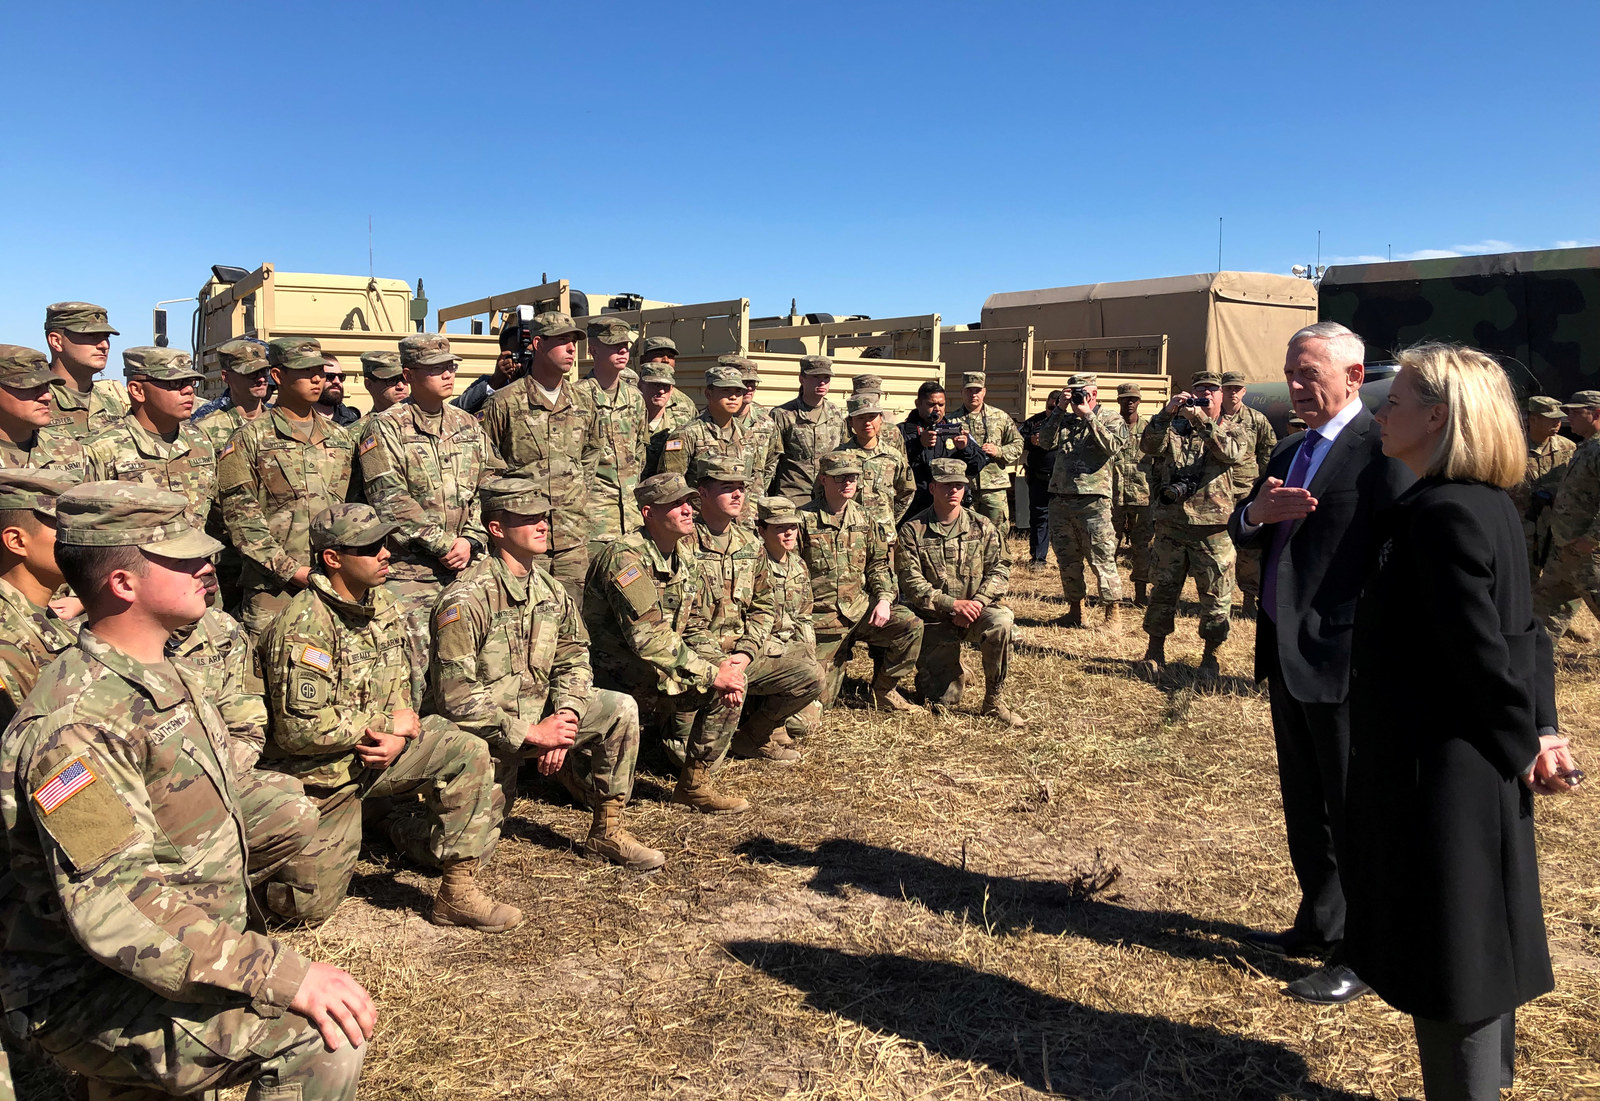 Mattis Visited The Troops Deployed To The Border And They Had Some Questions For Him